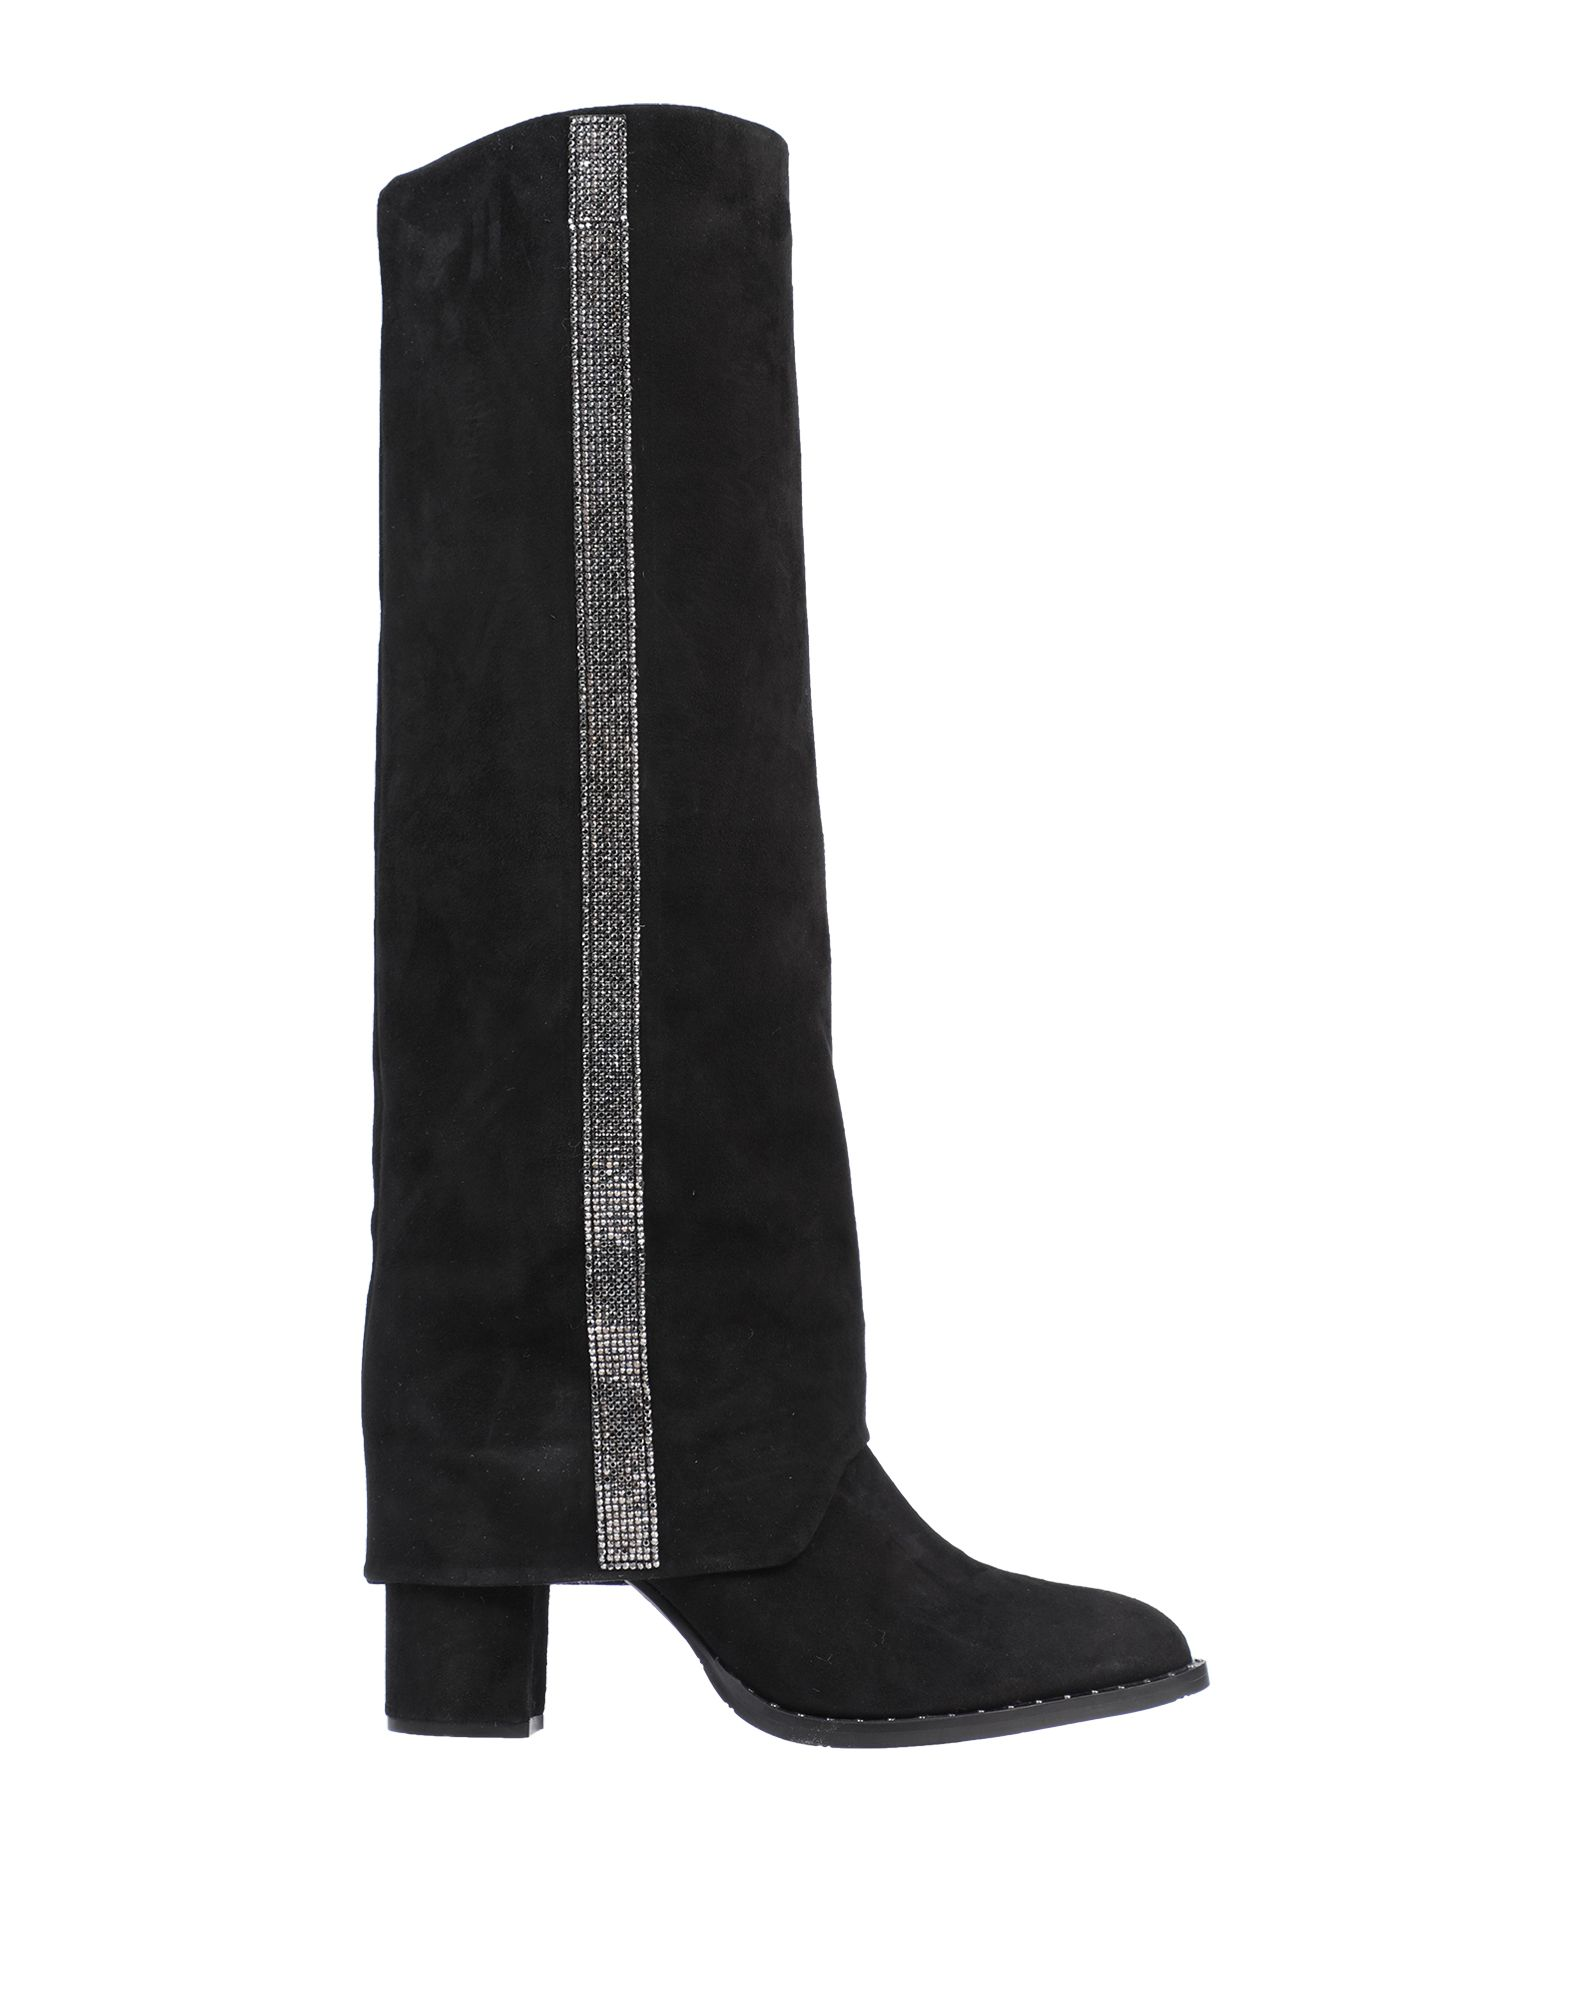 ELEVENTY Boots. leather, suede effect, rhinestones, solid color, round toeline, square heel, leather lining, rubber cleated sole, contains non-textile parts of animal origin. Soft Leather